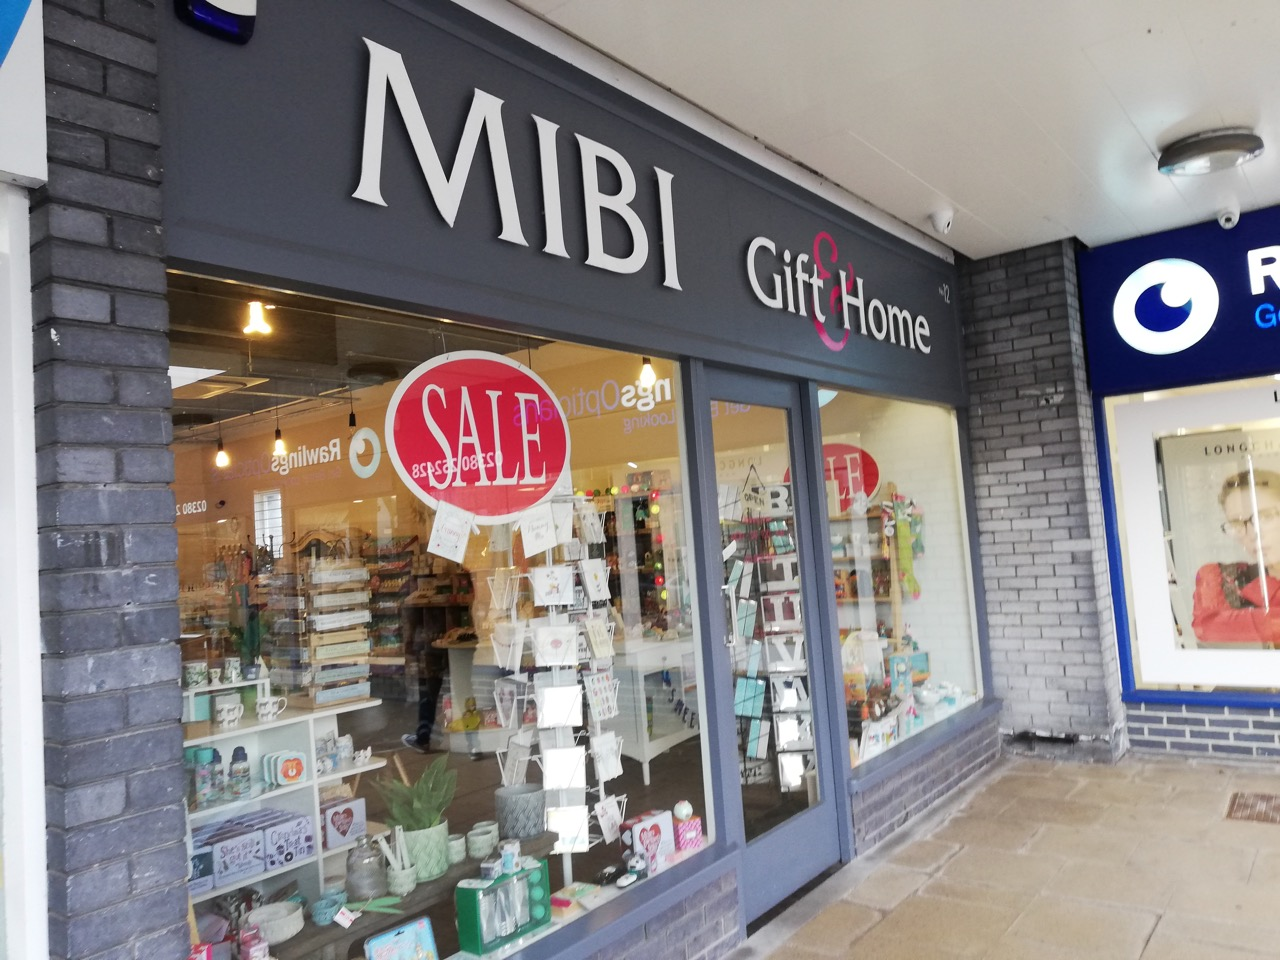 Mibi shop in Chandler's Ford - at Fryern Arcade